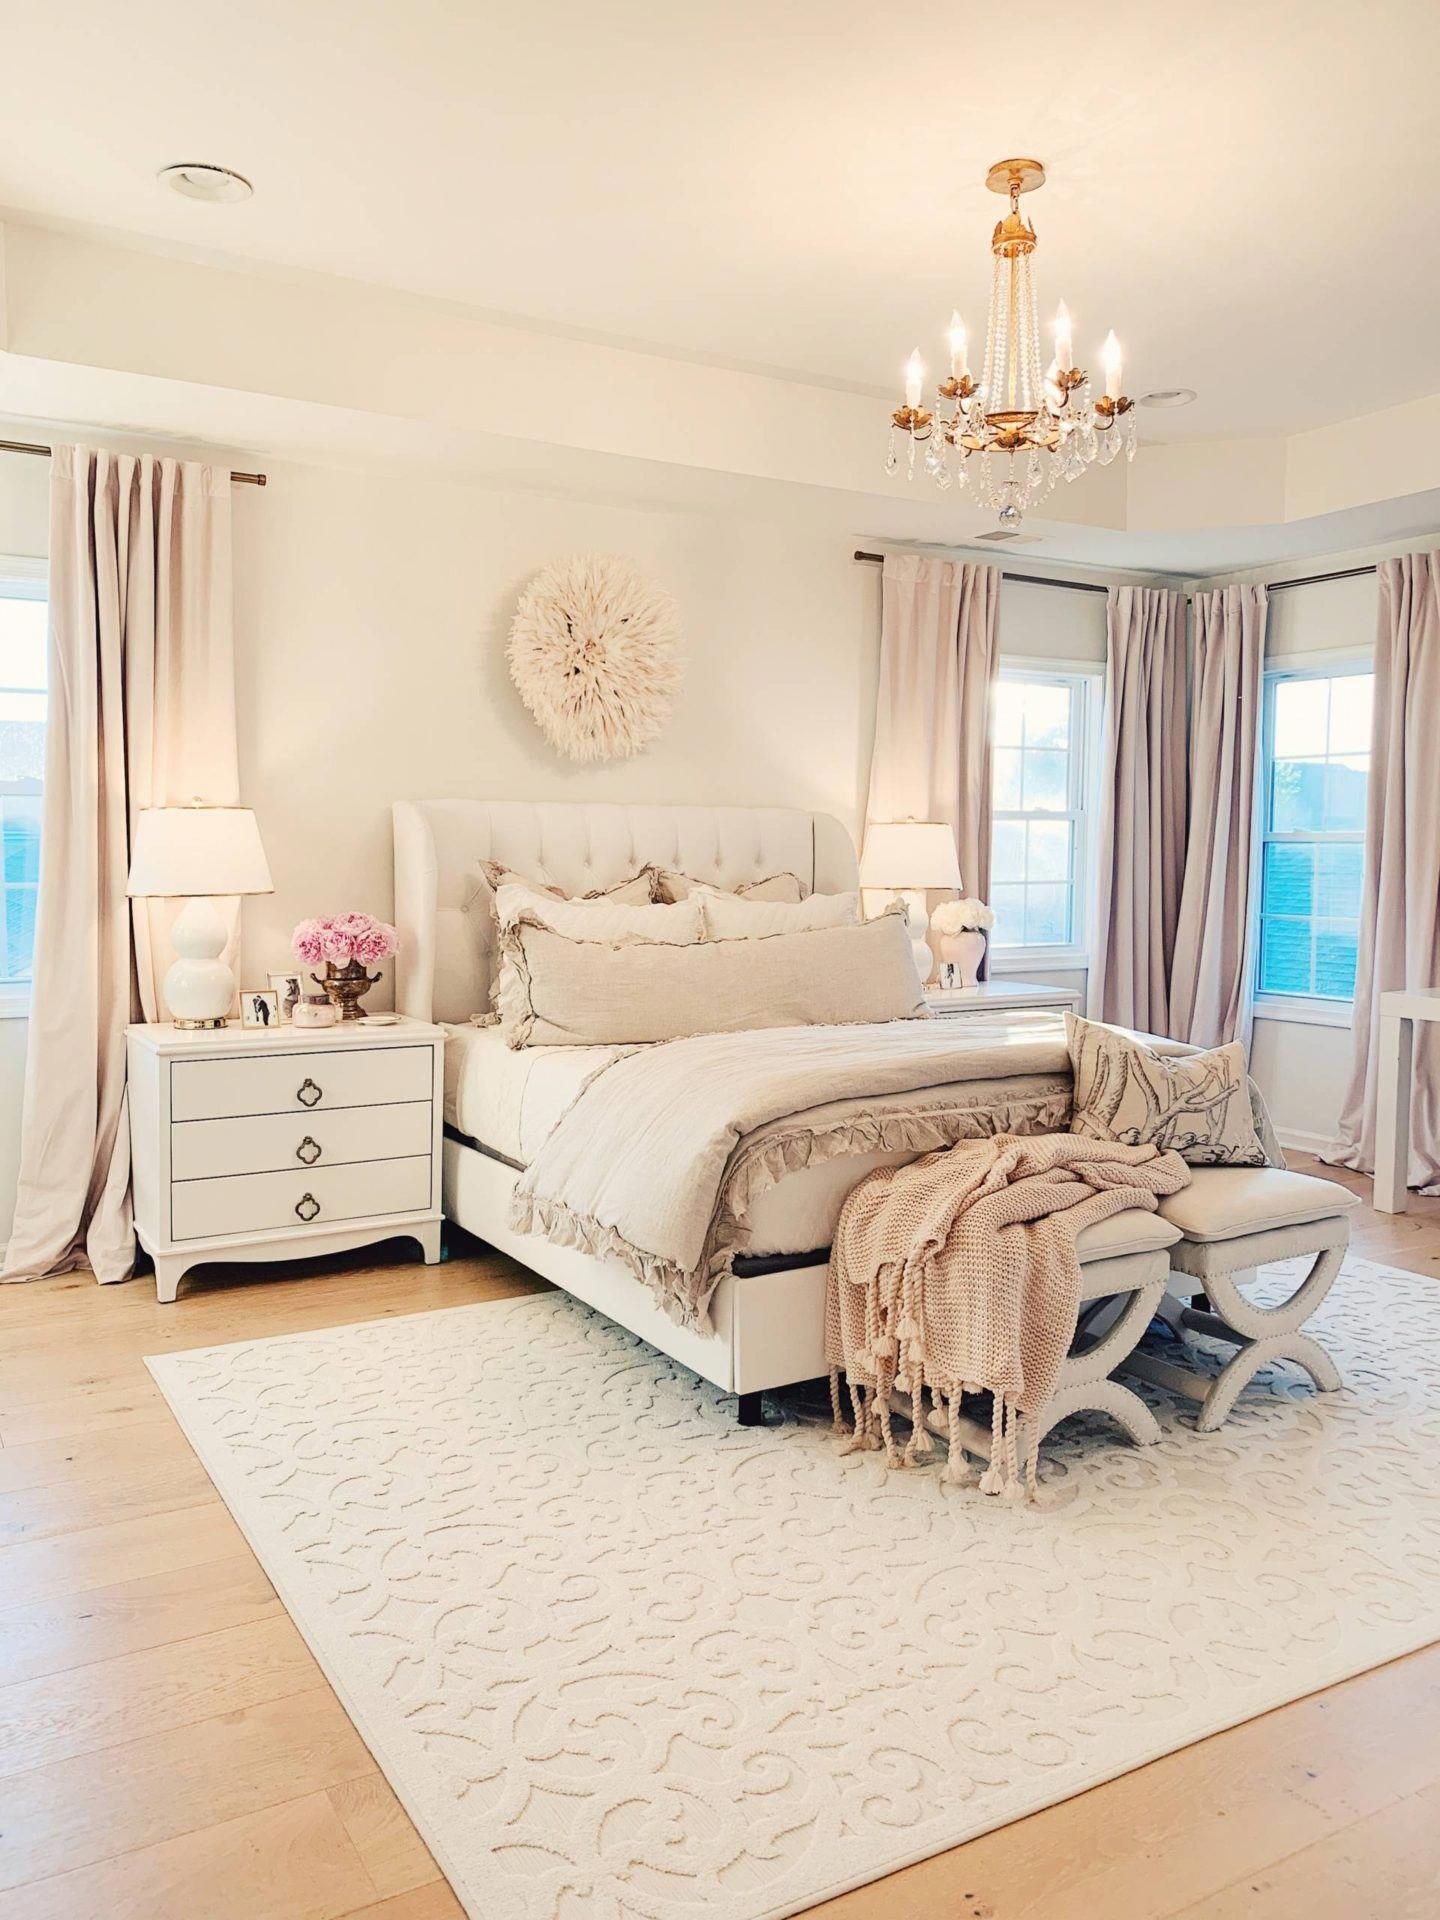 master bedroom decor a cozy masterbedroomsdecor in 2020 on dreamy luxurious master bedroom designs and decor ideas id=18411